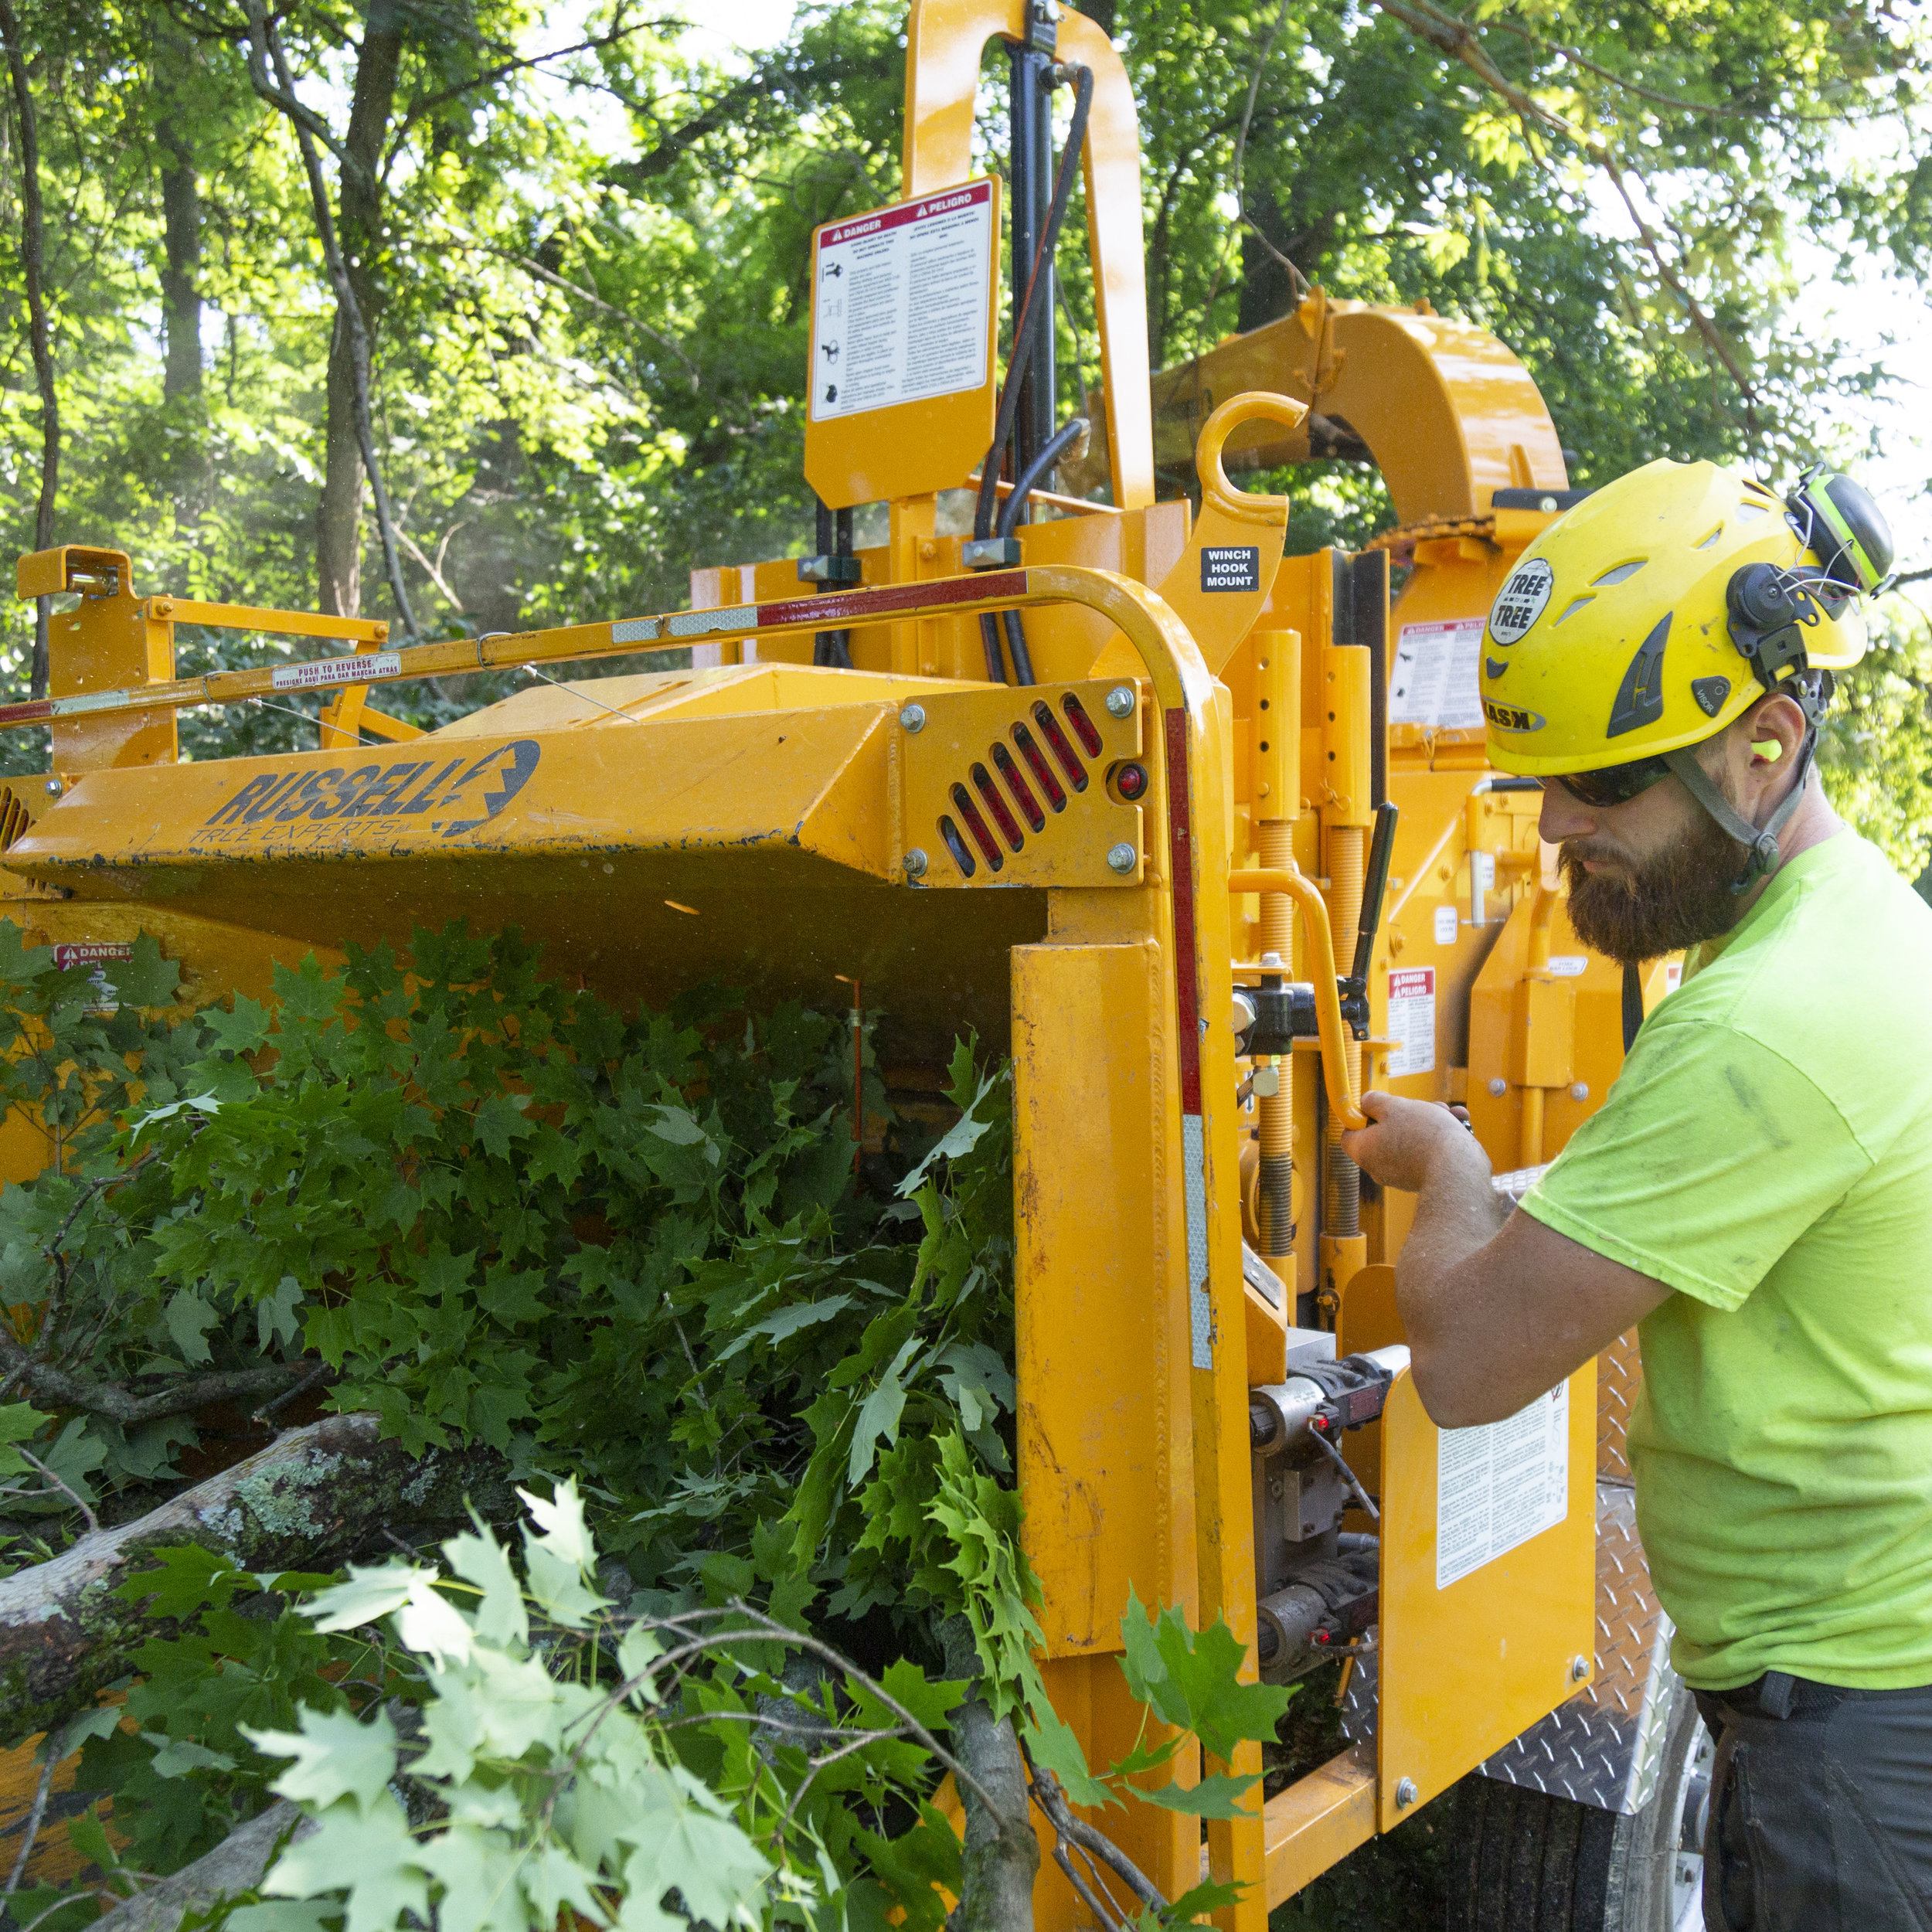 High Capacity Chippers - Used to chip large trees all at one time - no need to cut trees into smaller chunks